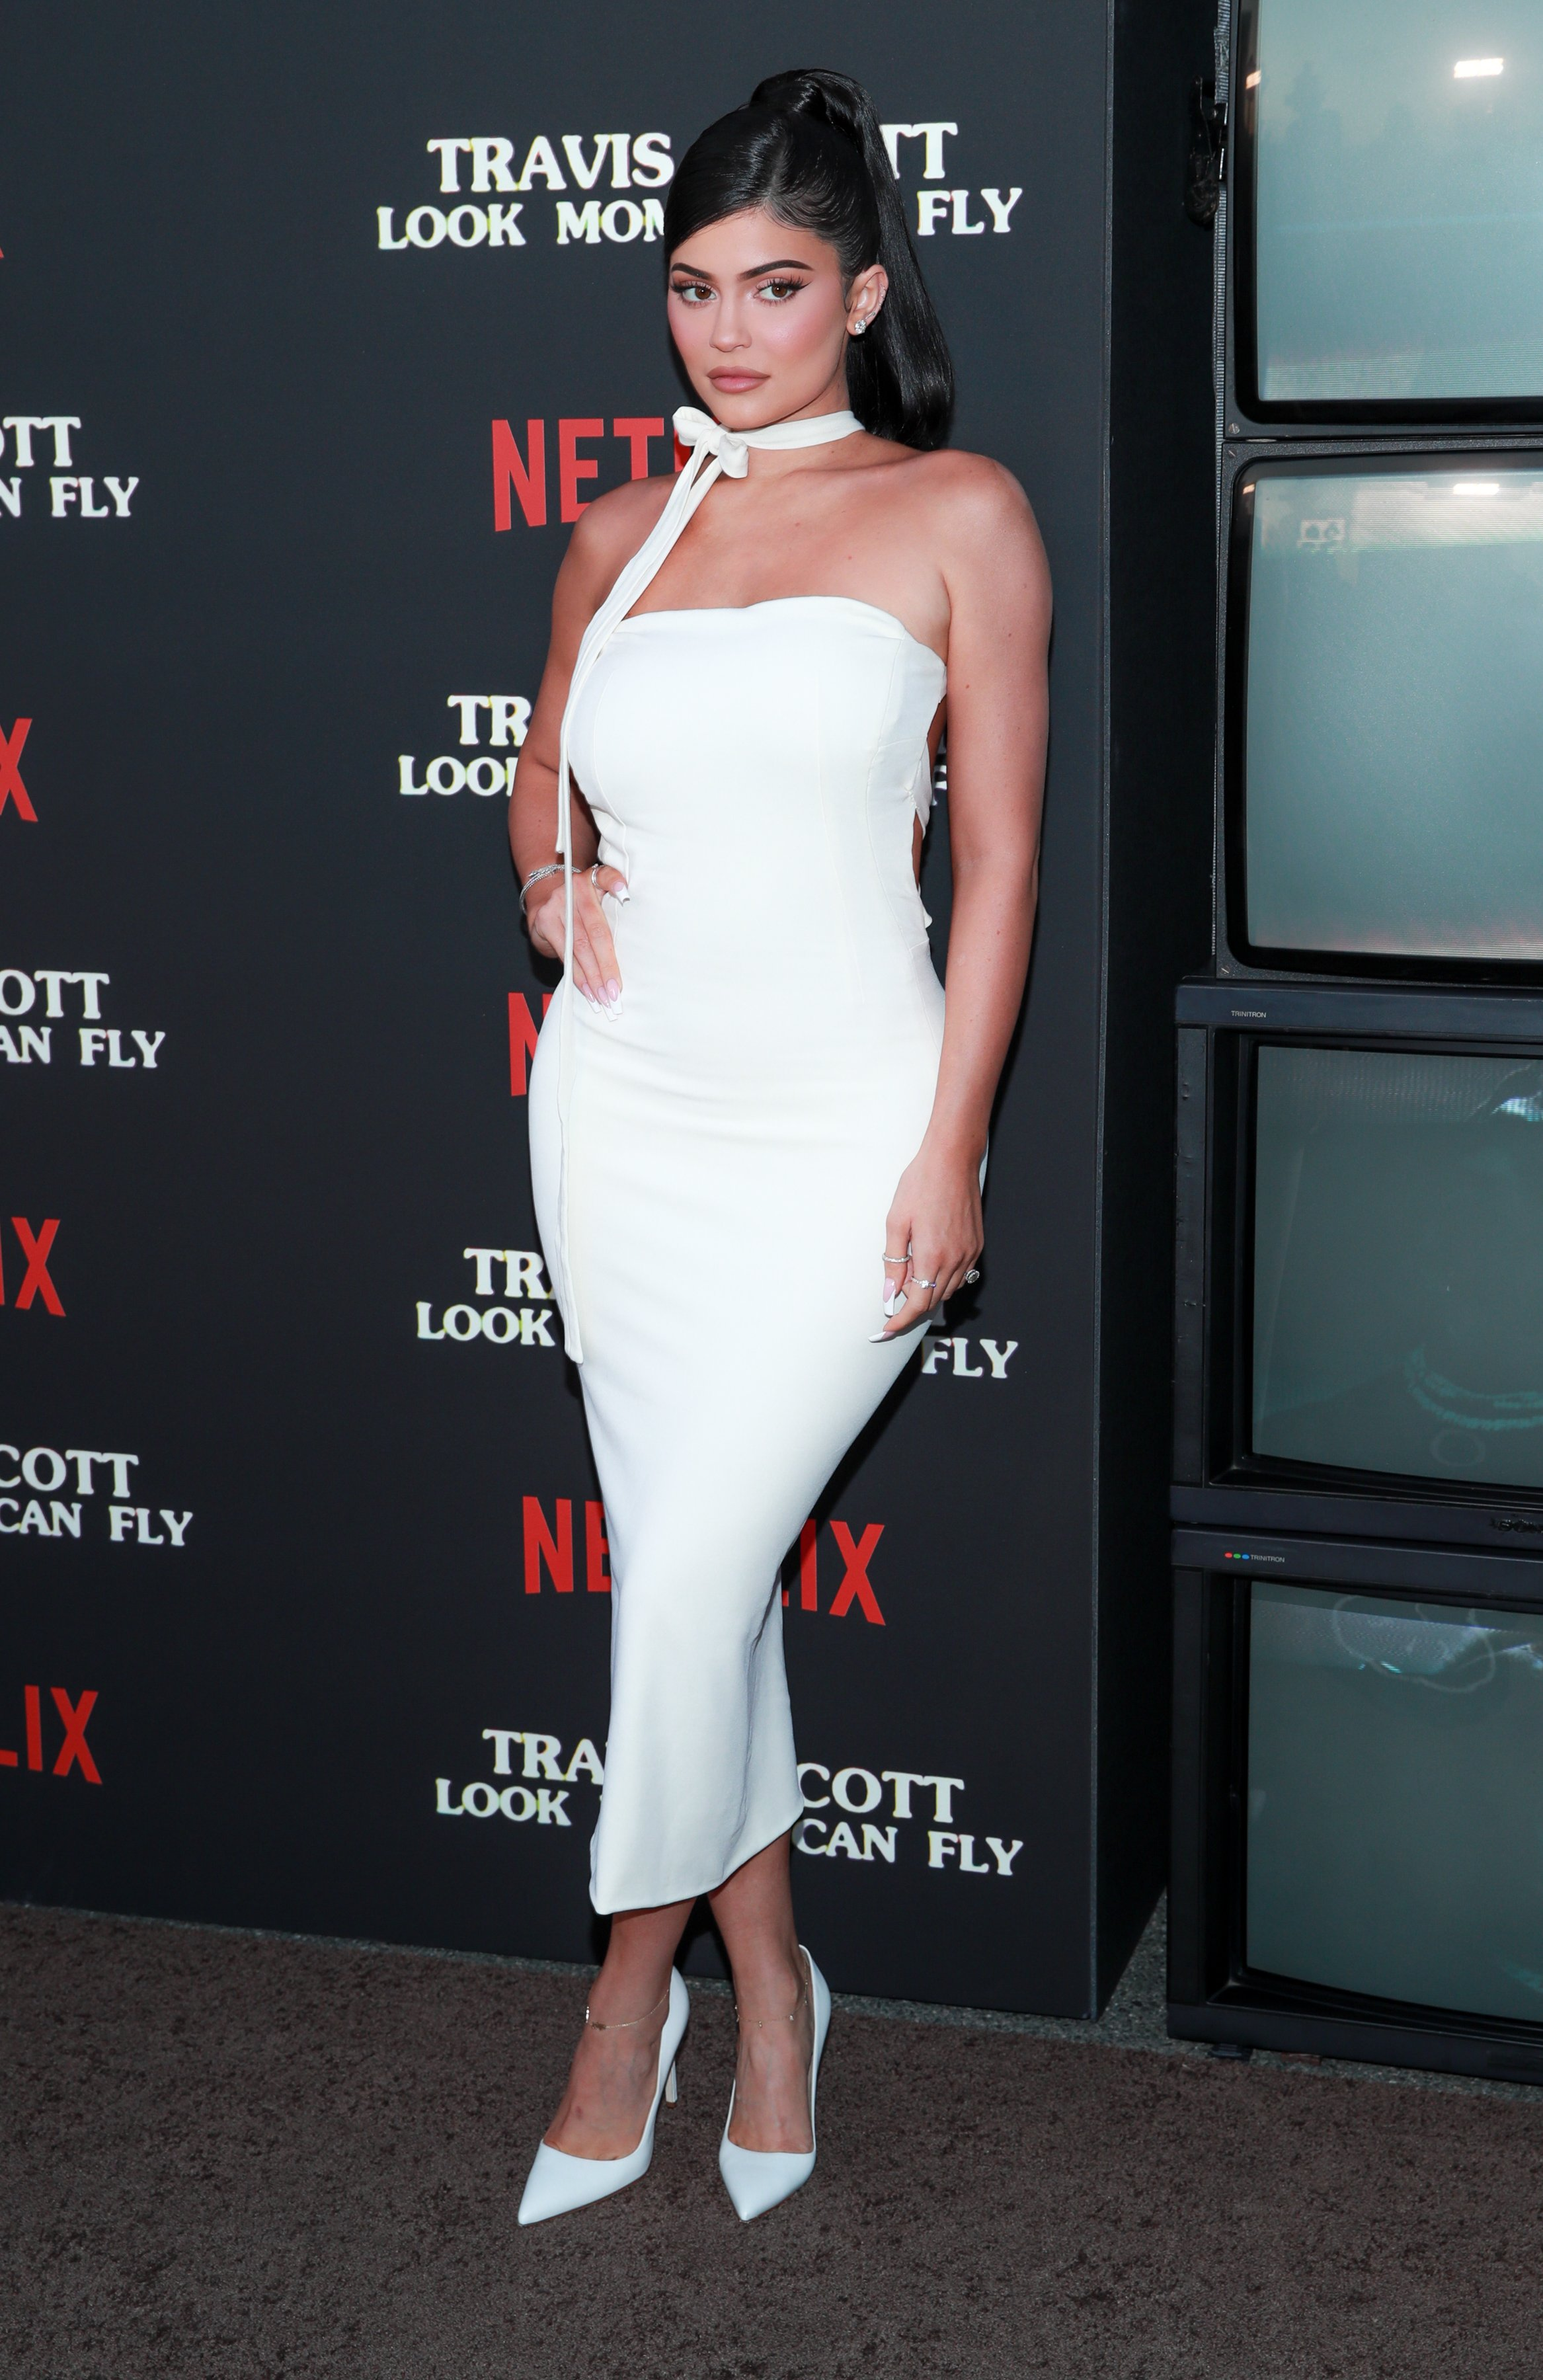 """Kylie Jenner attends the premiere of """"Travis Scott: Look Mom I Can Fly"""" In Santa Monica, California on August 27, 2019   Photo: Getty Images"""